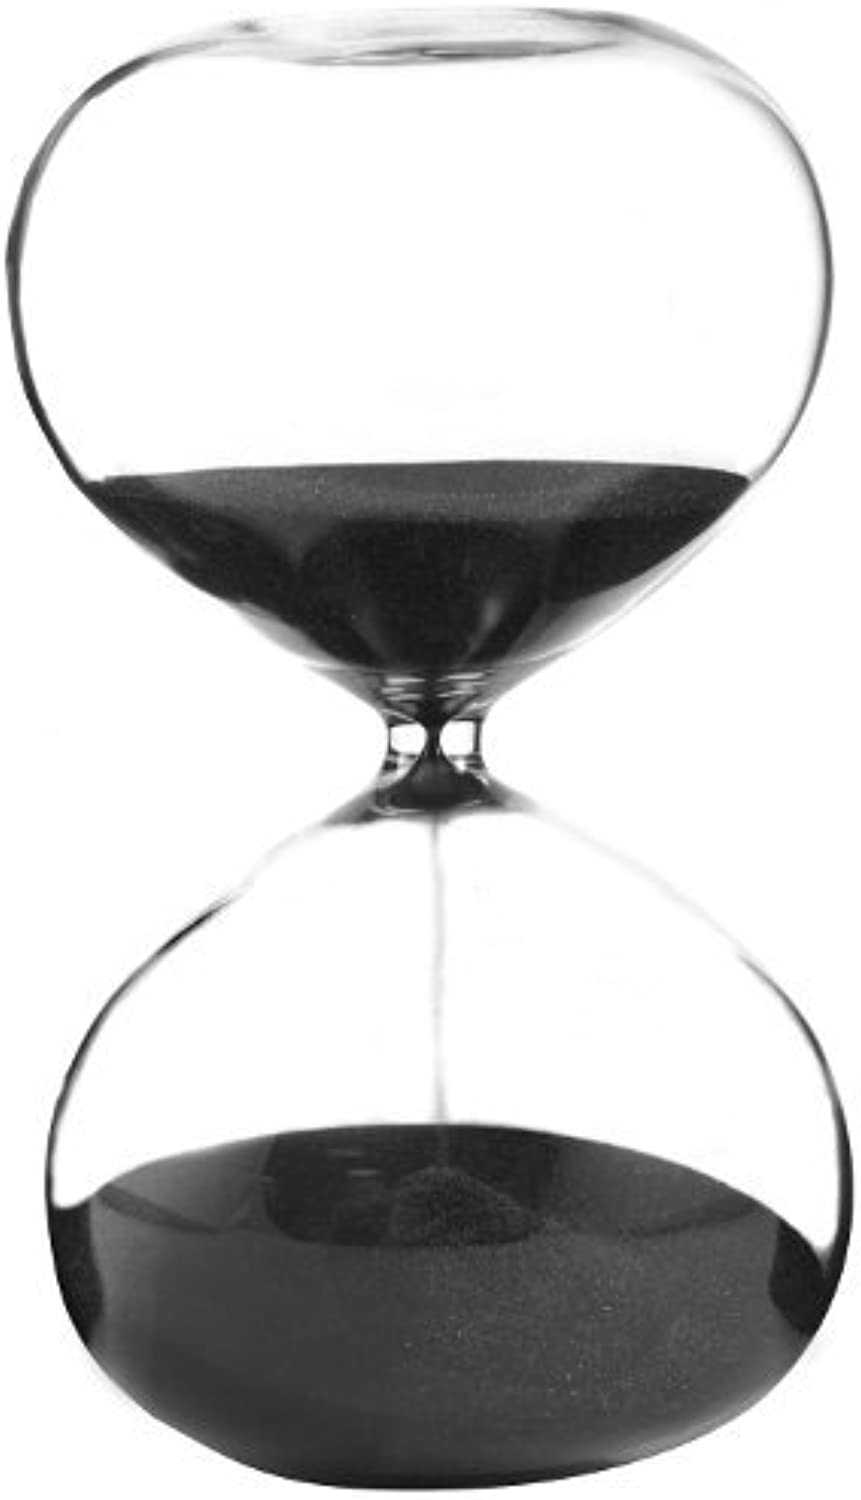 Hourglass Sand Timer - 60 Minute Black Sand, 6.25